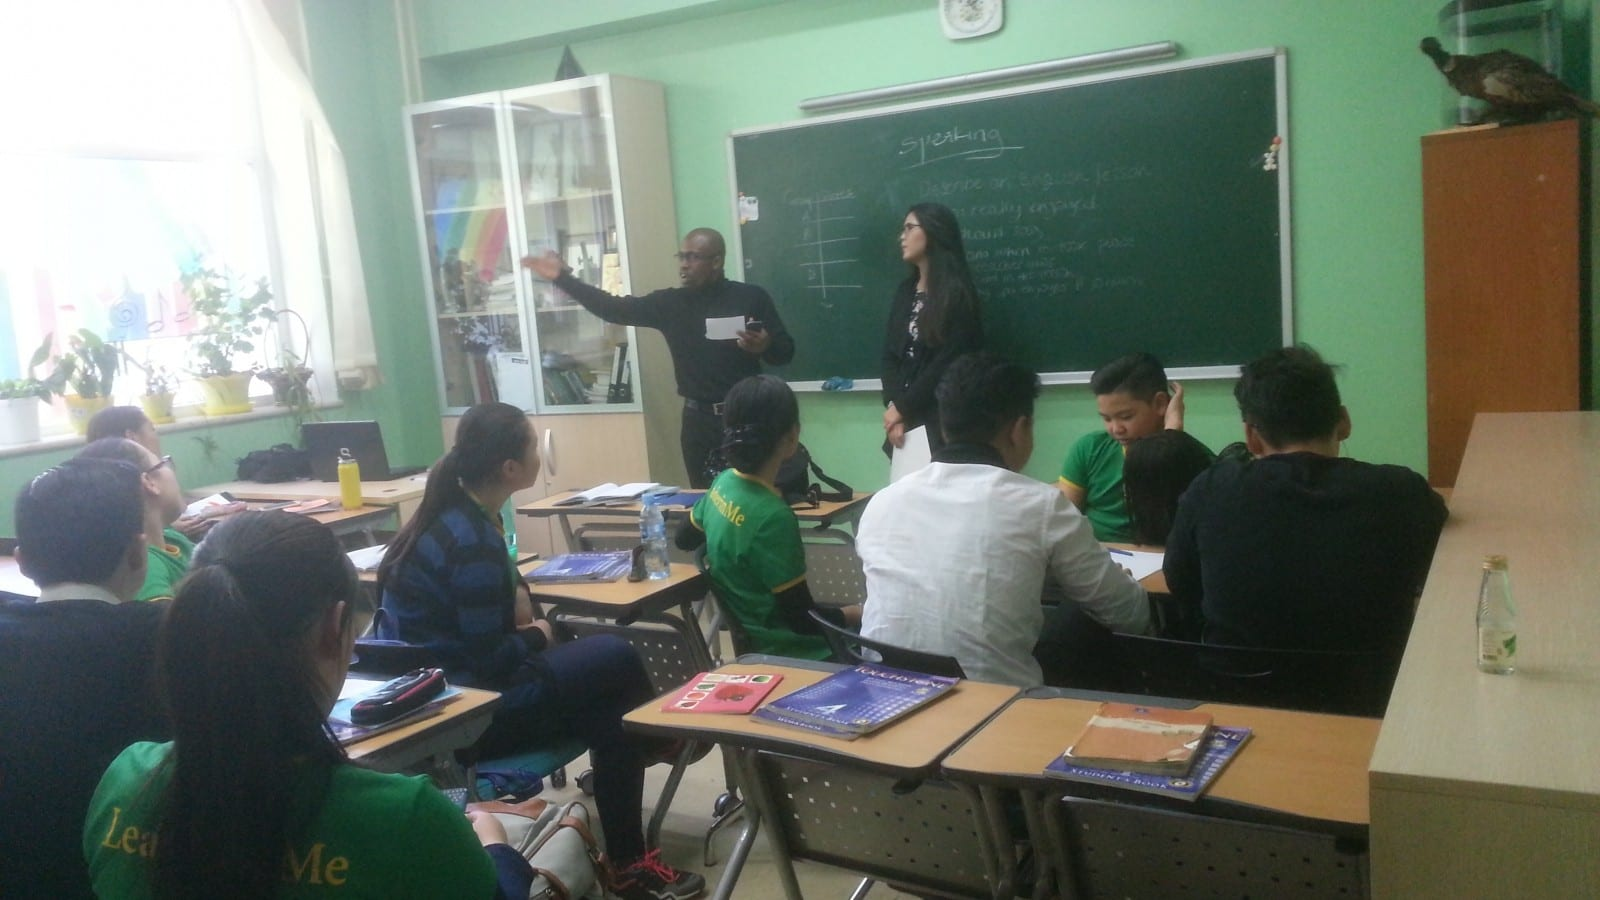 Tips for teaching English in Mongolia